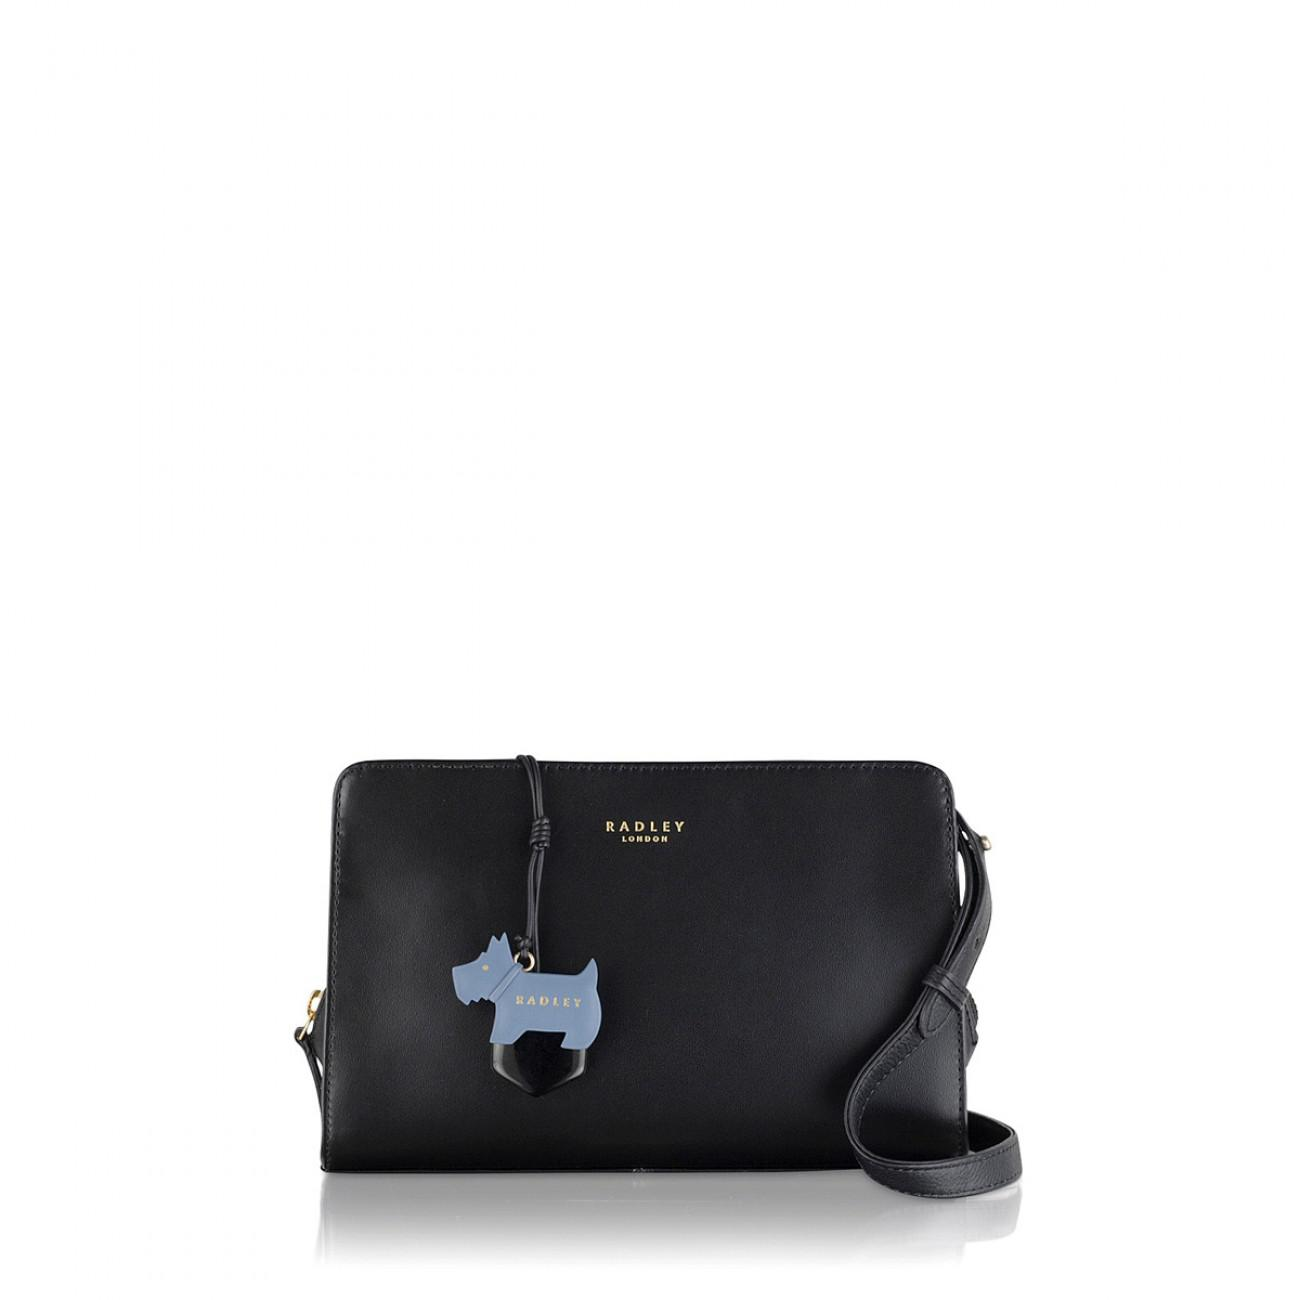 Radley - Black Women s Liverpool Street Medium Ziptop Cross Body Bag -  Lyst. View fullscreen 91b42d832fd29